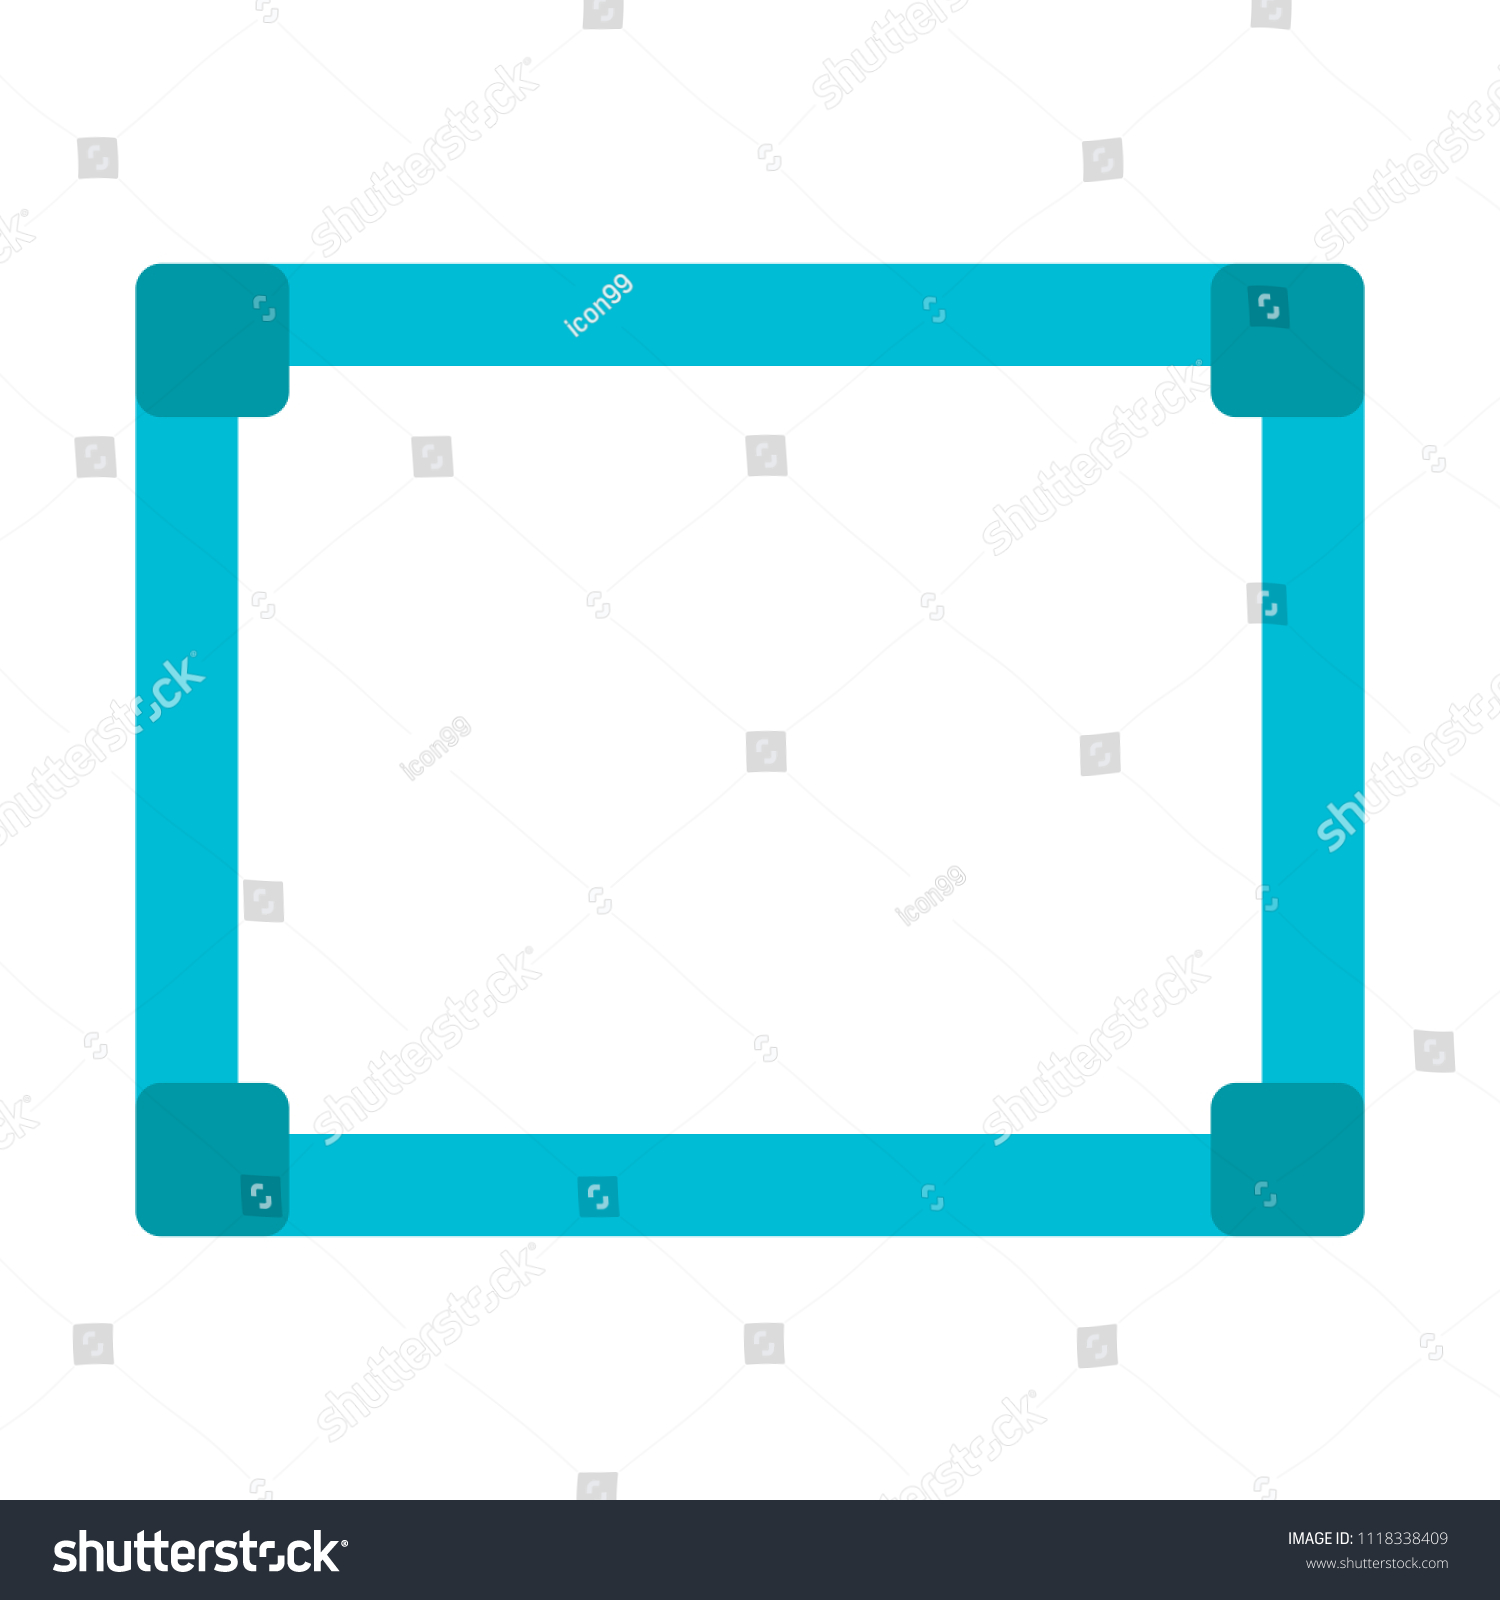 hight resolution of blank photo frame stock vector royalty free 1118338409 shutterstock path on a ball pool table diagram blank pool table diagram